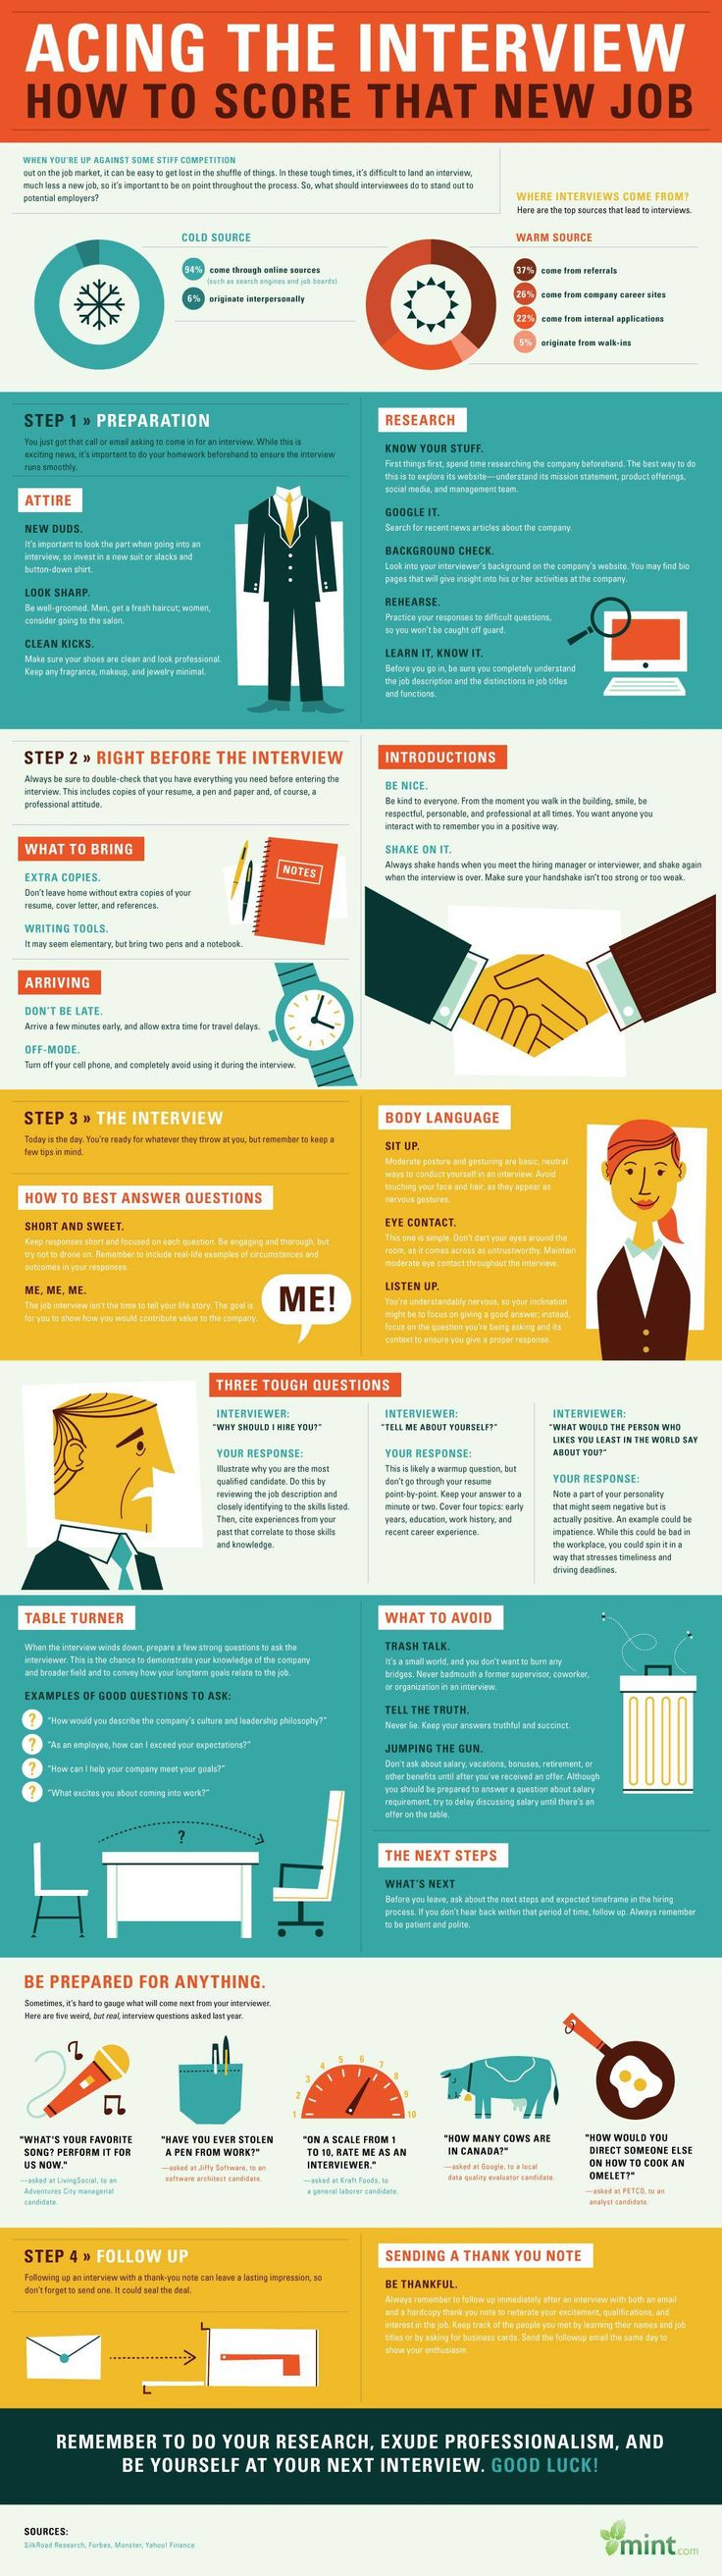 how to ace a job interview interview processinterview advicethe - The Best Job Interview Tips You Can Get